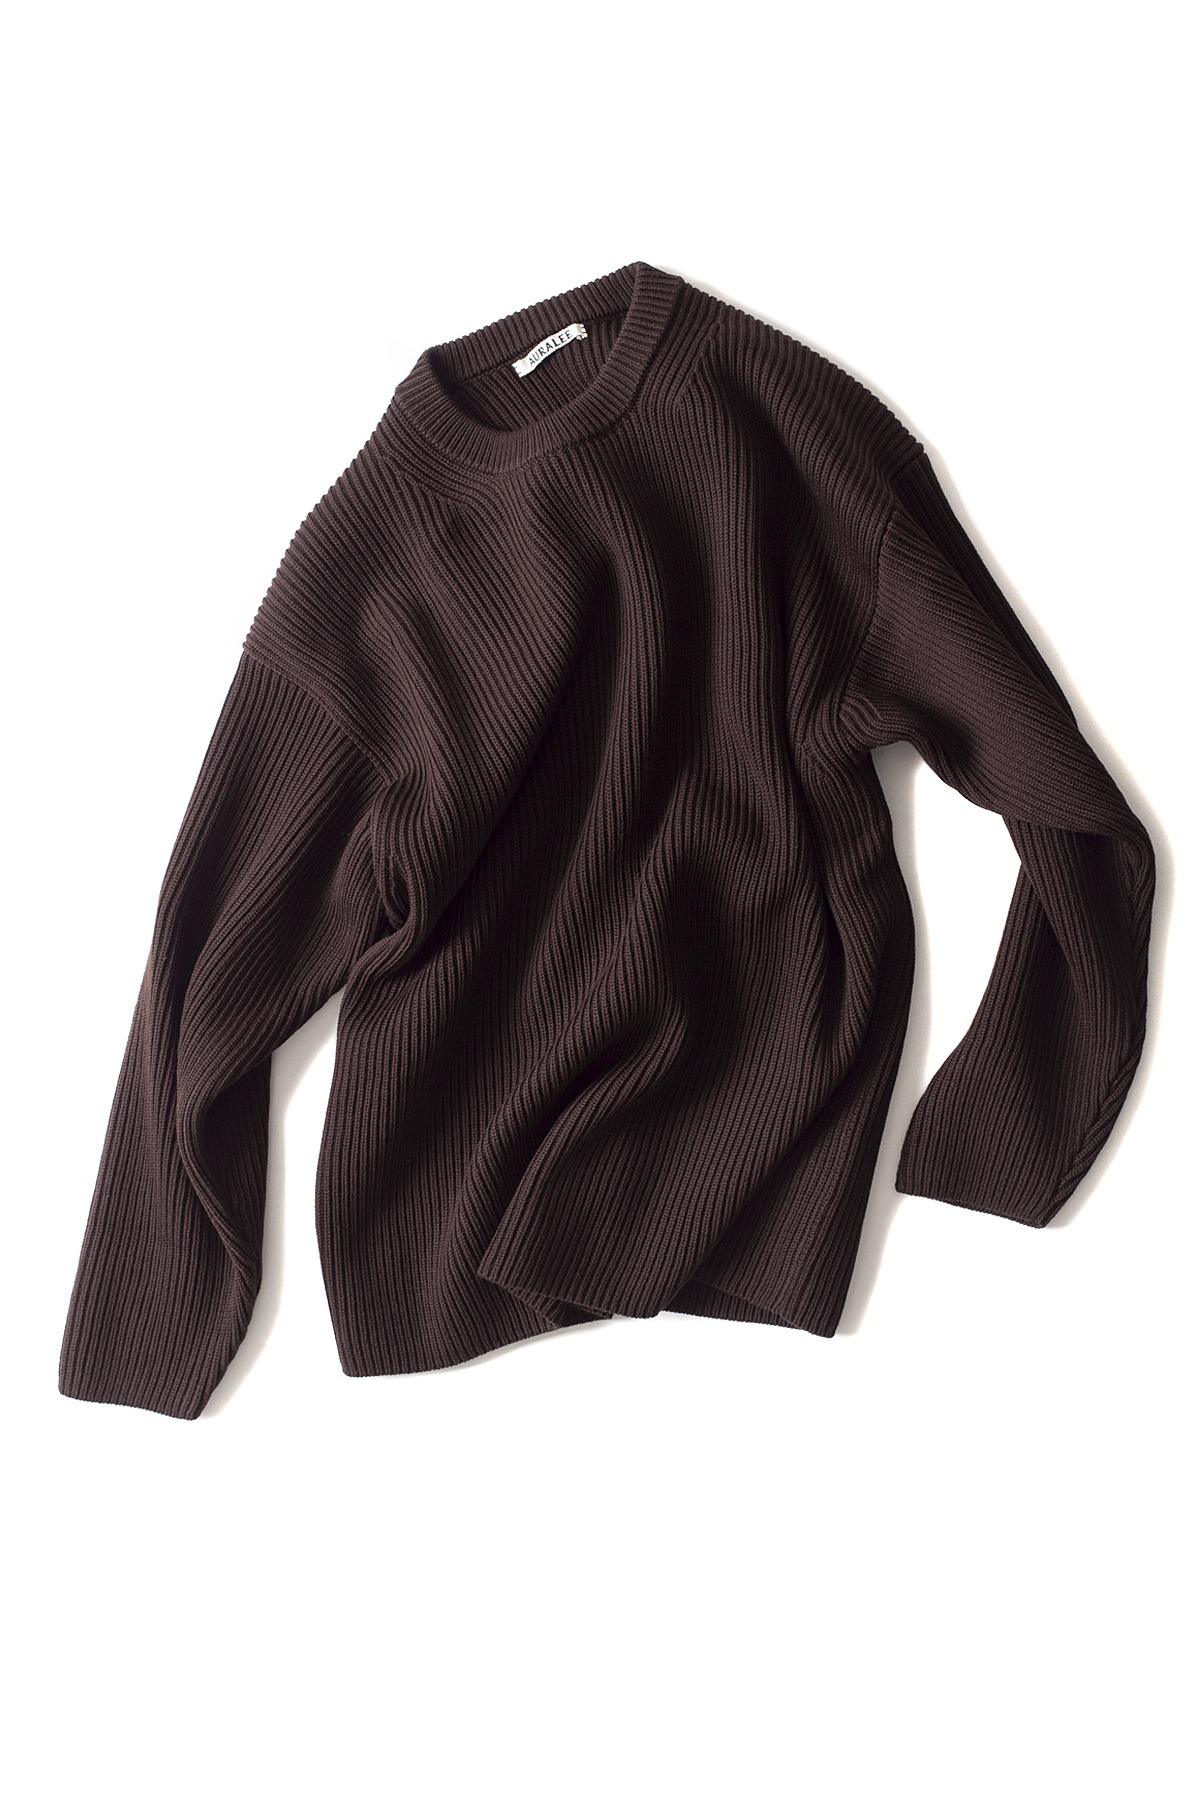 Auralee : Super Fine Wool Rib Knit Big P/O (Dark Brown)